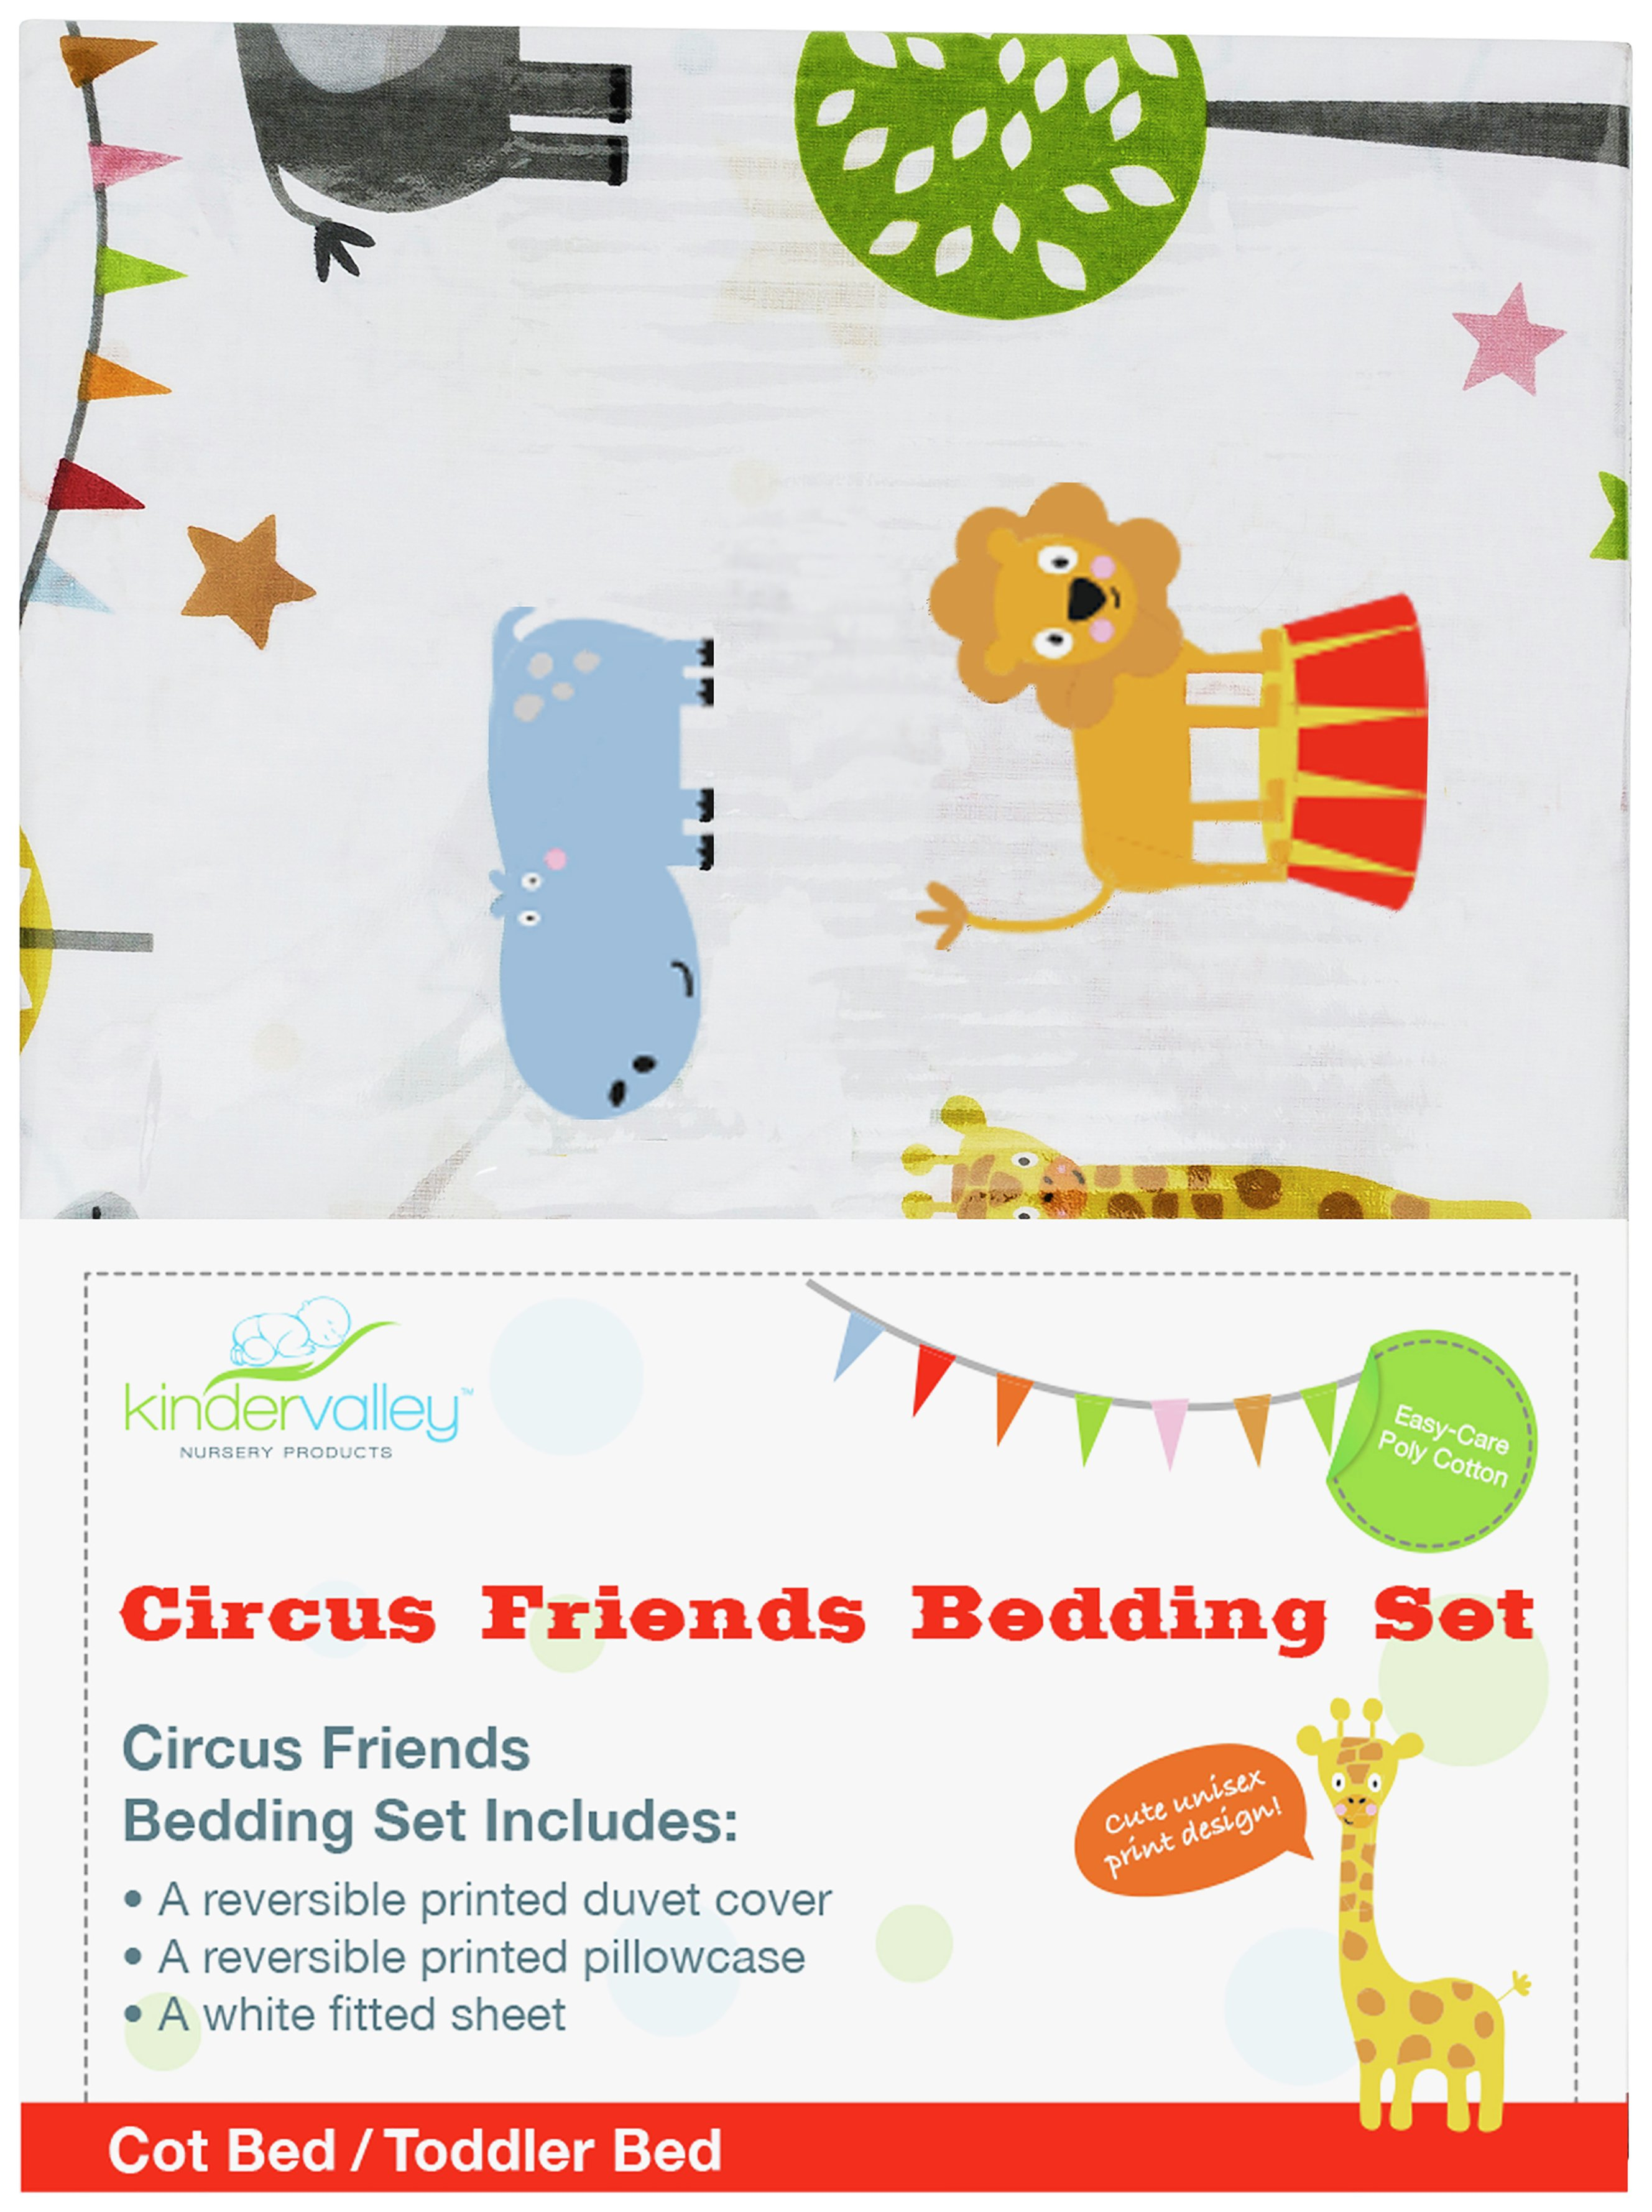 Kinder Valley Circus Friends Bedding Set Review